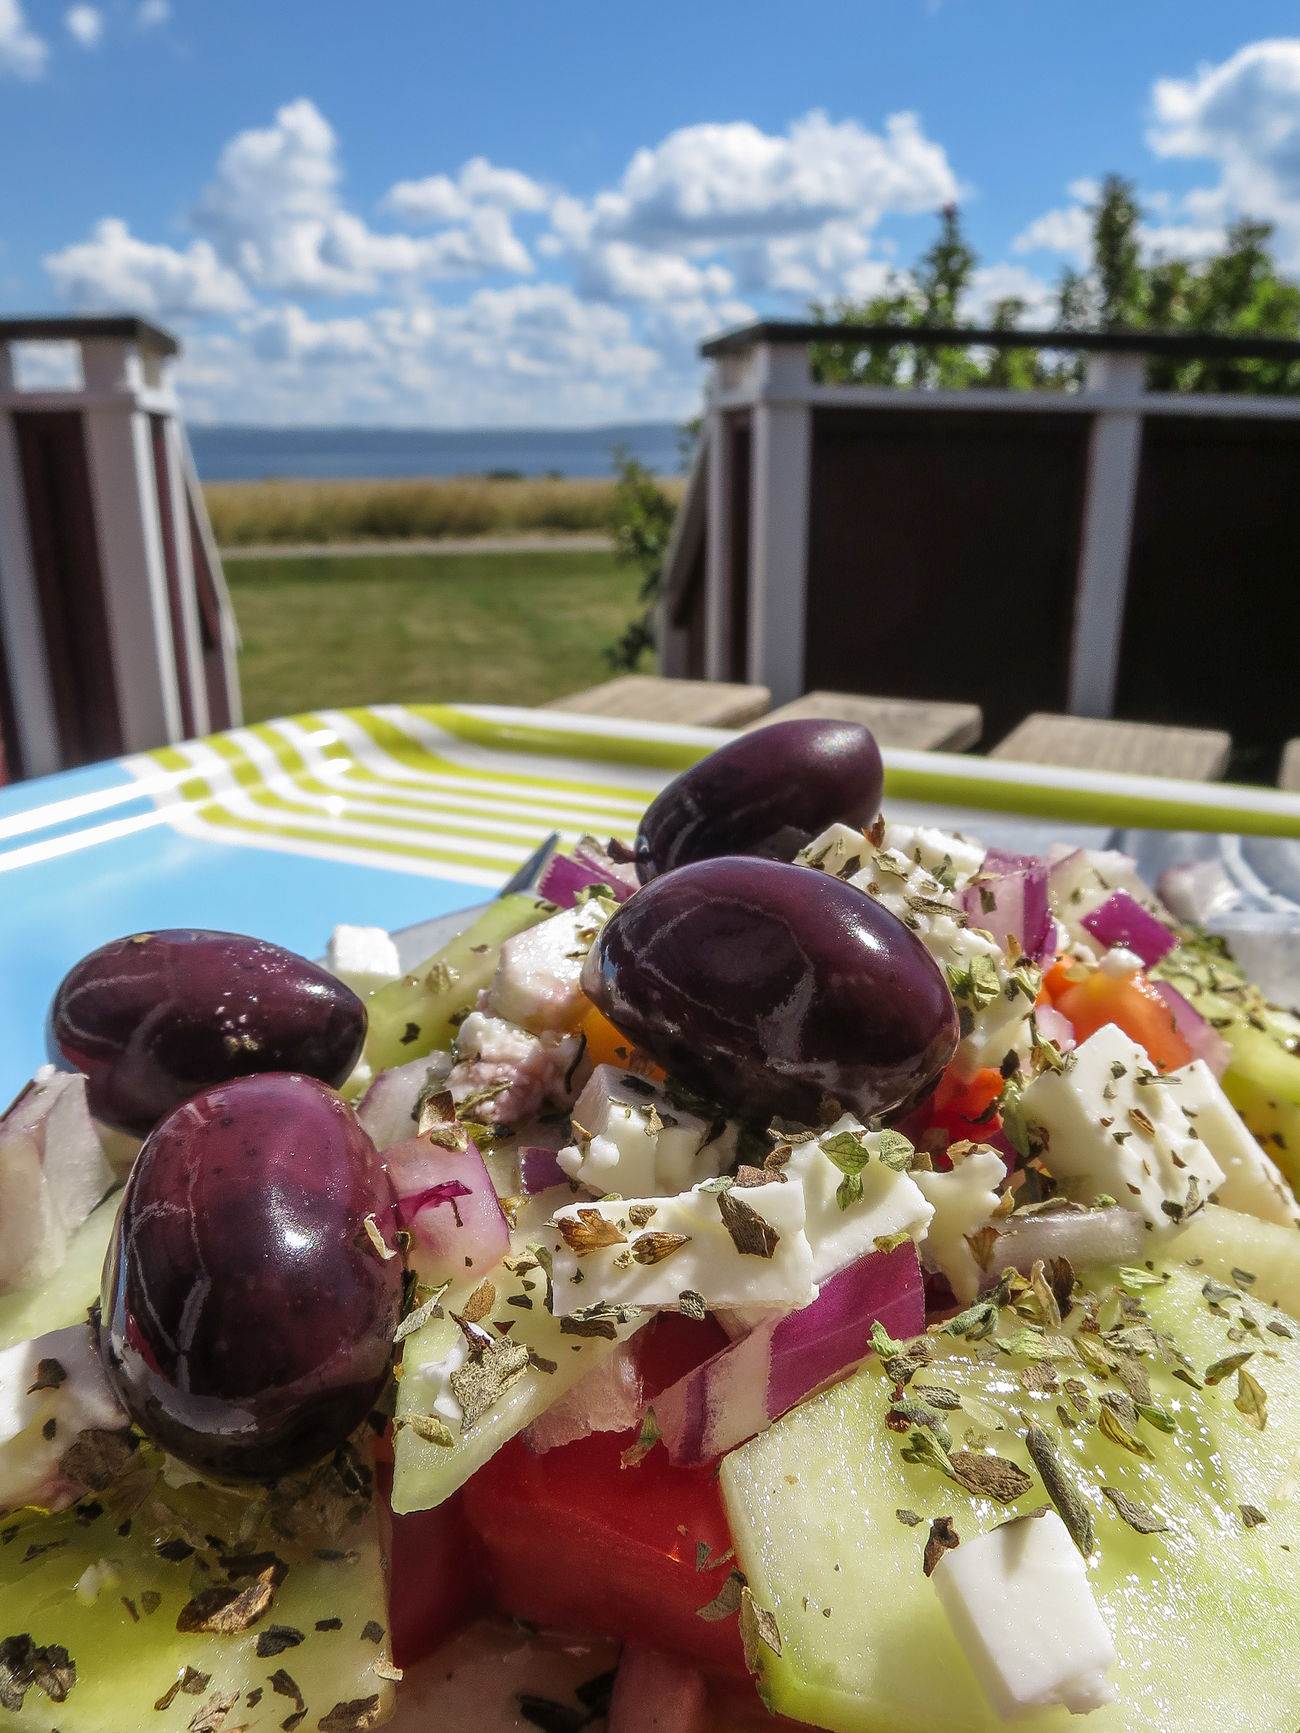 A Greek Salad a Hot Summer Day on Lovely Visingsö is amazing ☺